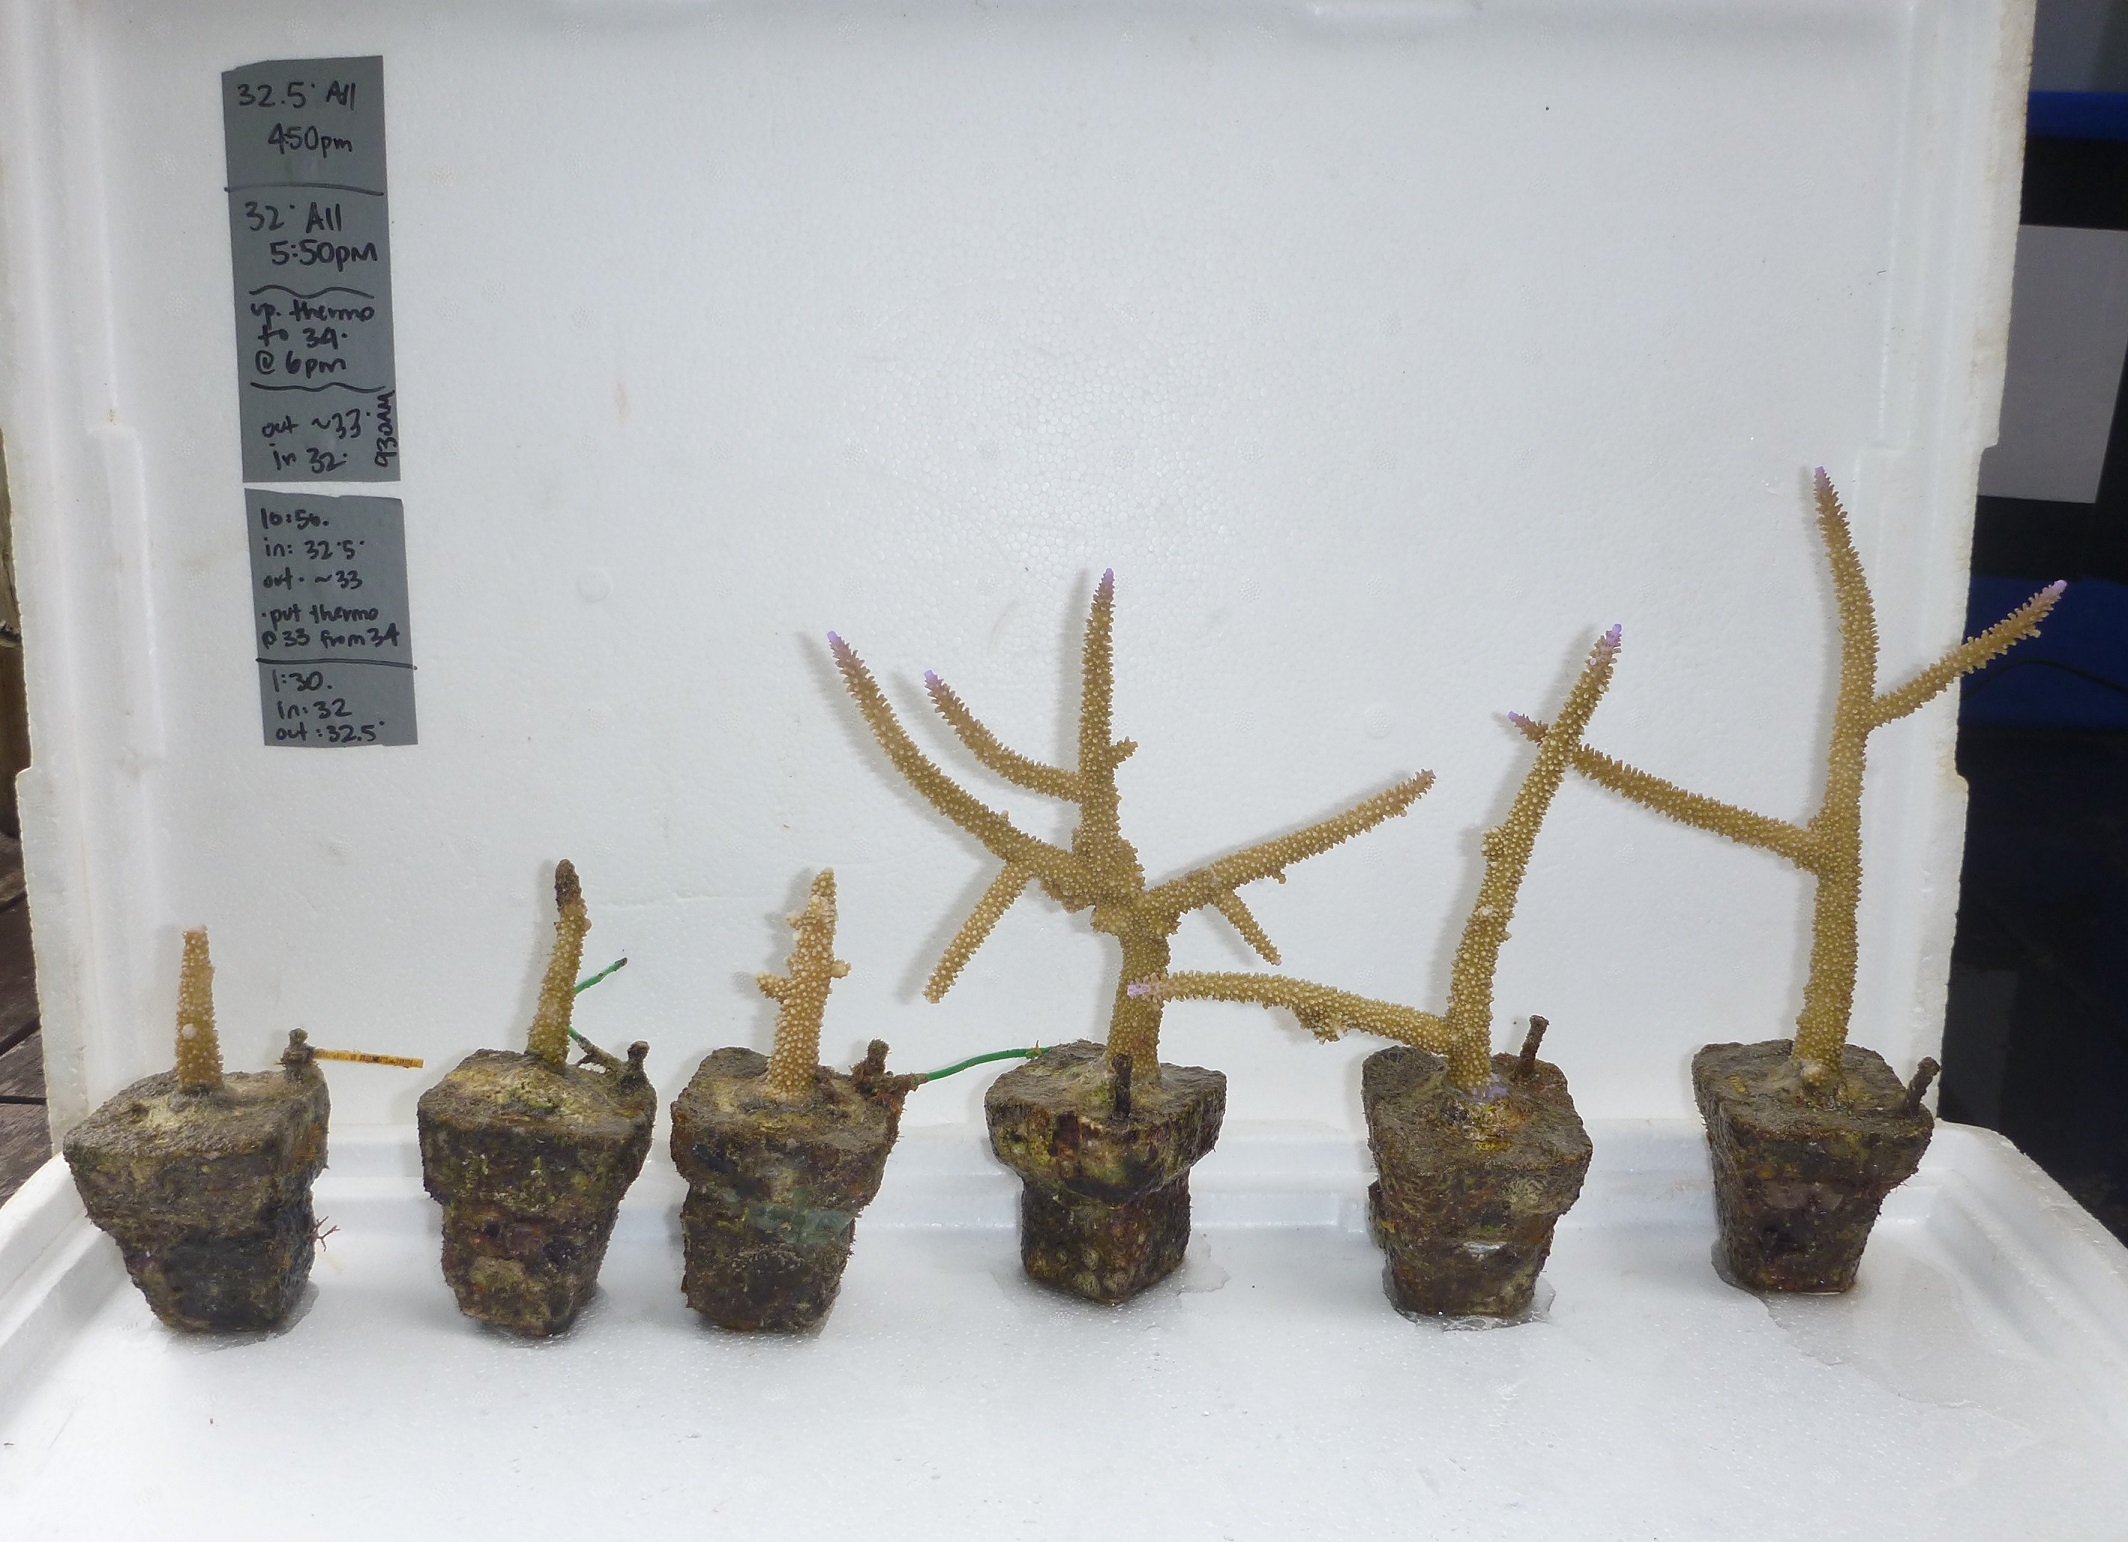 Comparison of staghorn corals grown for one year without the influence of seabird guano (three corals on left) with corals grown near a seabird colony (three corals on right). Credit: Dr Candida Savage